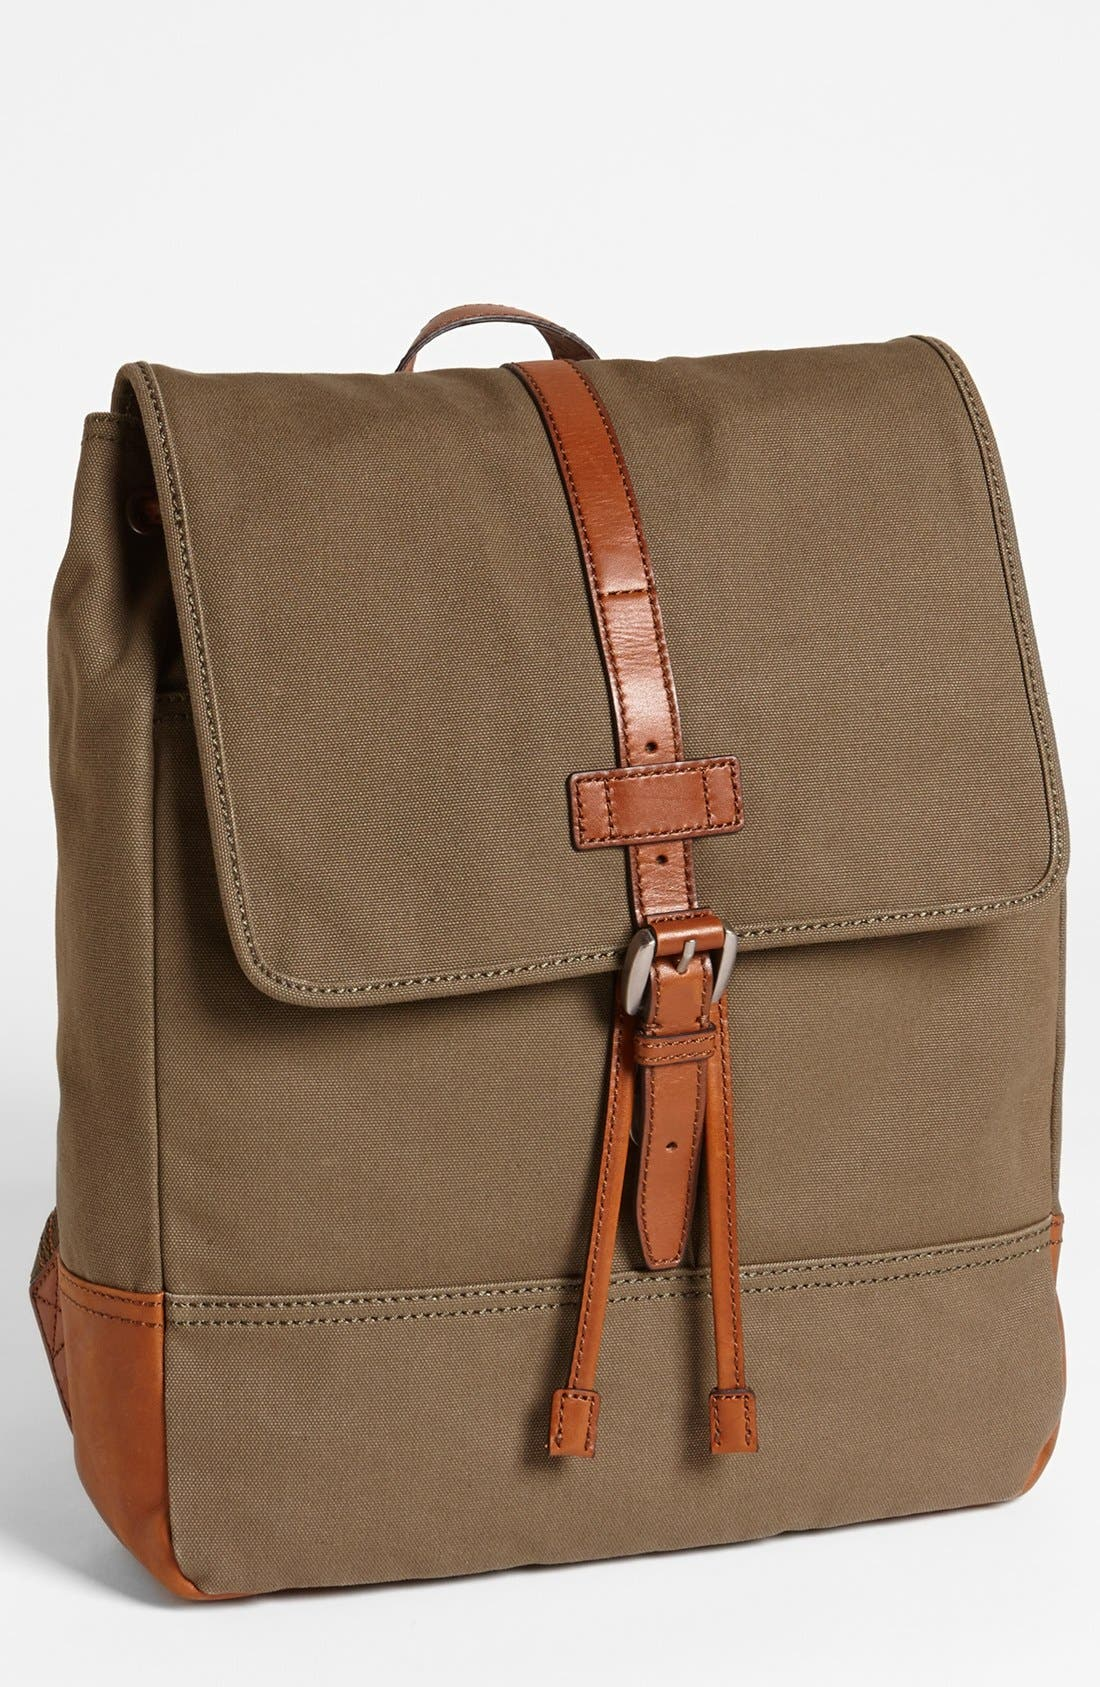 Main Image - Fossil 'Emerson' Backpack